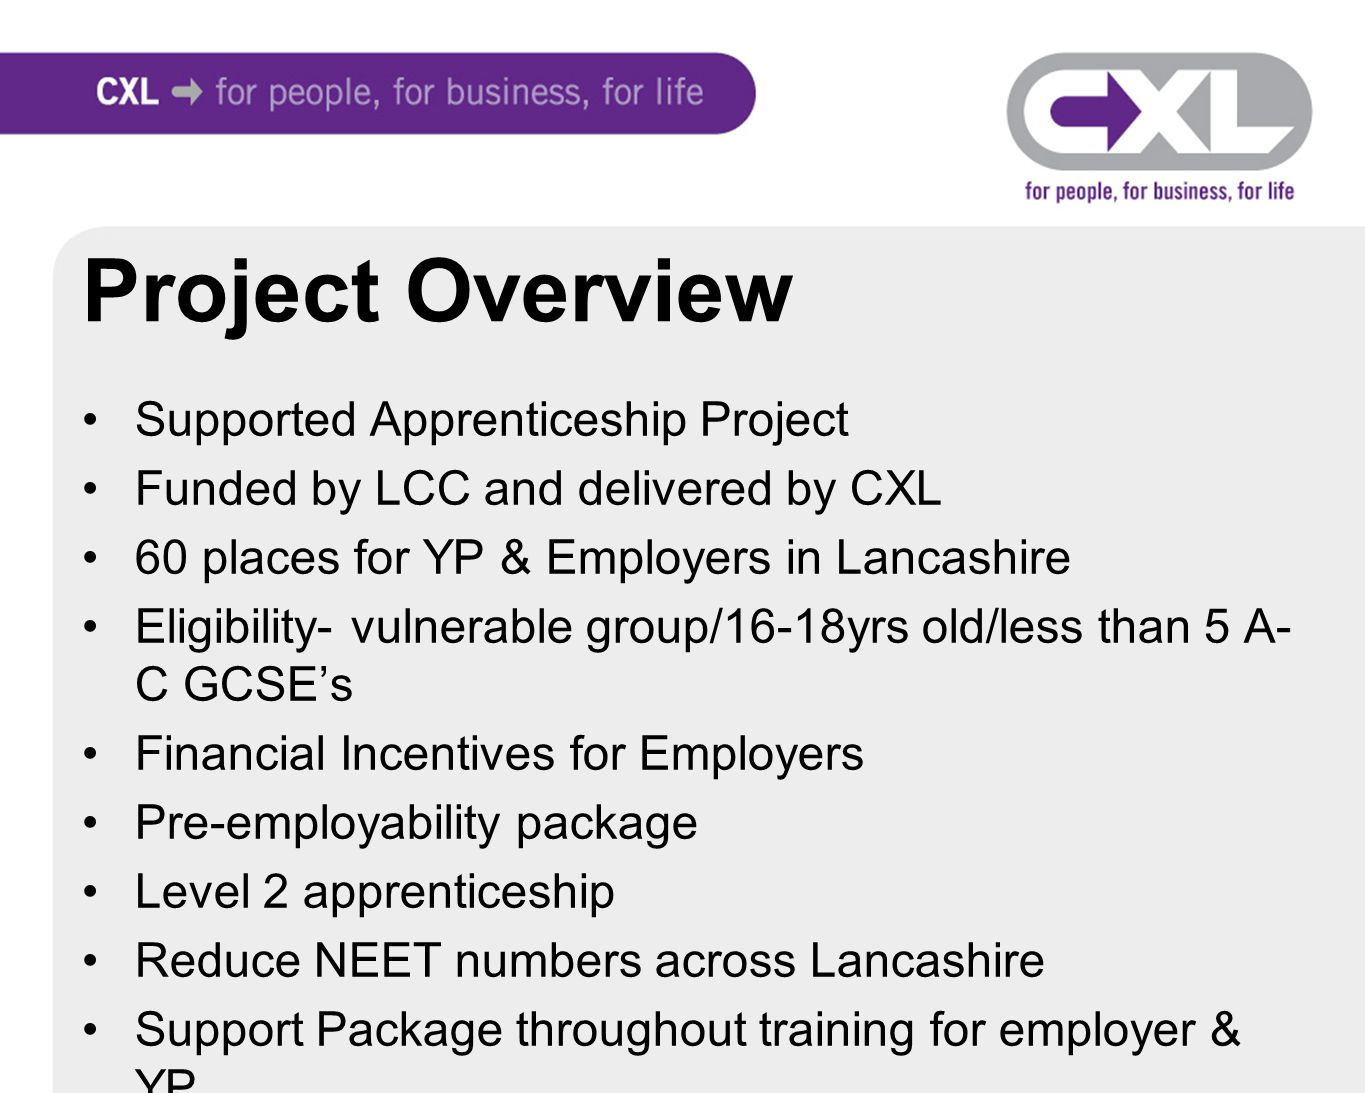 Project Overview Supported Apprenticeship Project Funded by LCC and delivered by CXL 60 places for YP & Employers in Lancashire Eligibility- vulnerable group/16-18yrs old/less than 5 A- C GCSE's Financial Incentives for Employers Pre-employability package Level 2 apprenticeship Reduce NEET numbers across Lancashire Support Package throughout training for employer & YP